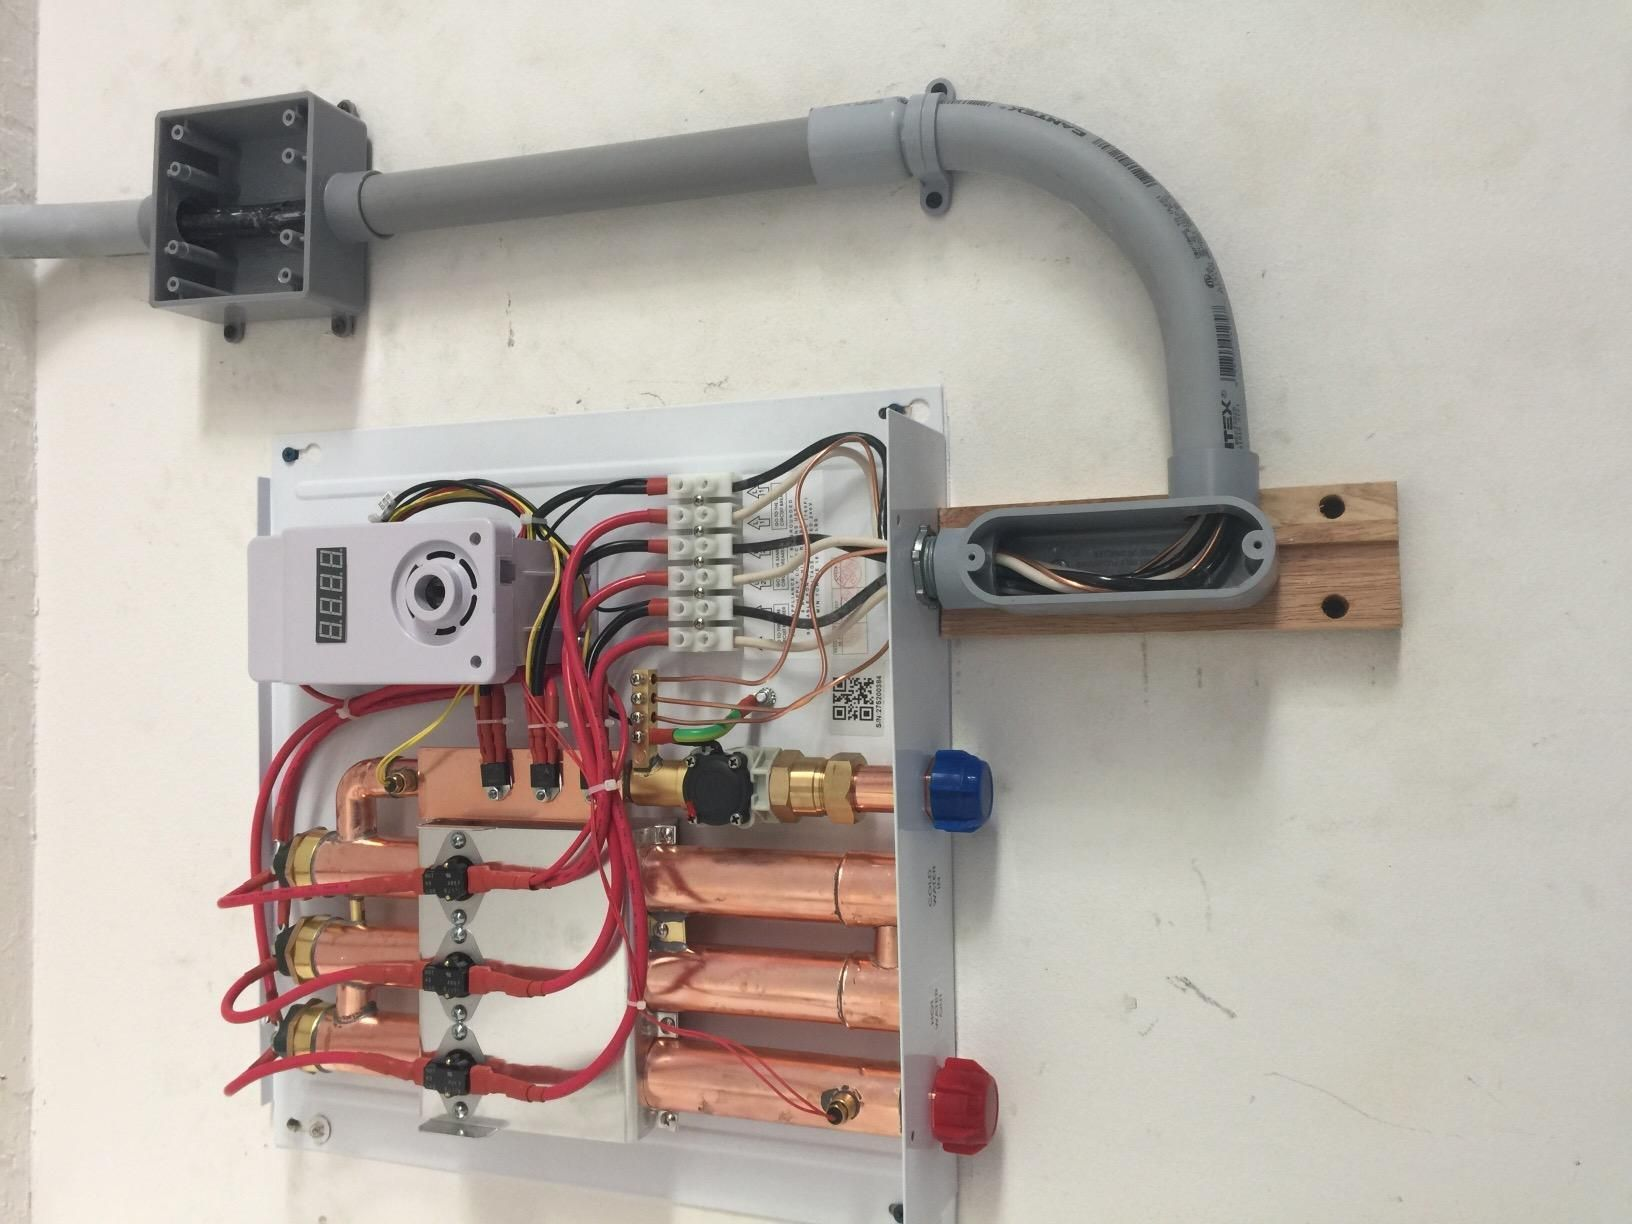 medium resolution of prior to purchase and installation please verify this model is the rights size for your hot water needs and electrical requirements